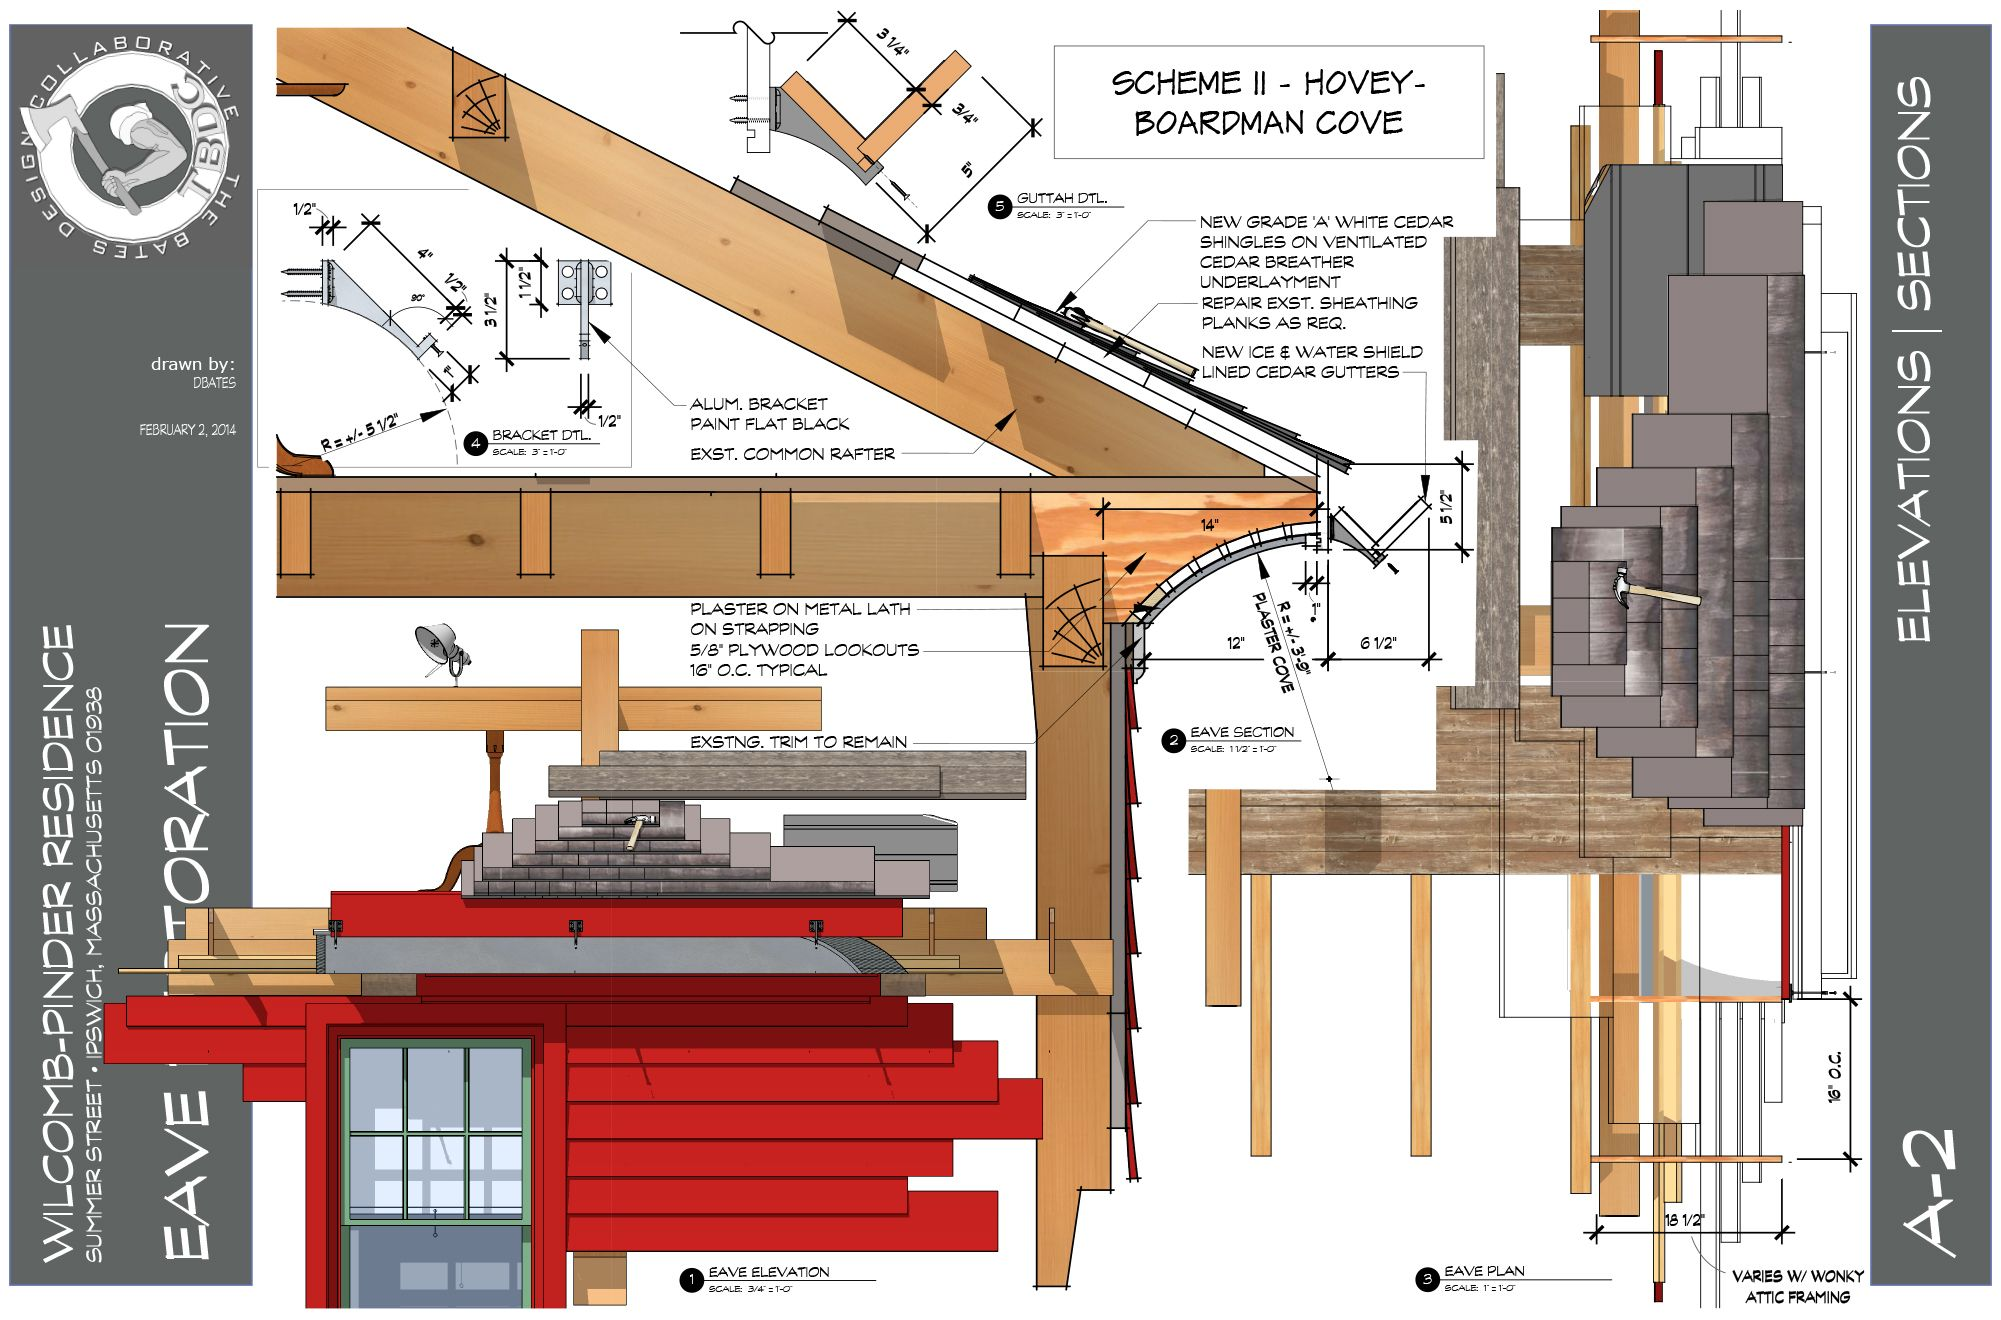 coved eave drawings tbdc sketchup layout models pinterest coved eave drawings tbdc sketchup layout